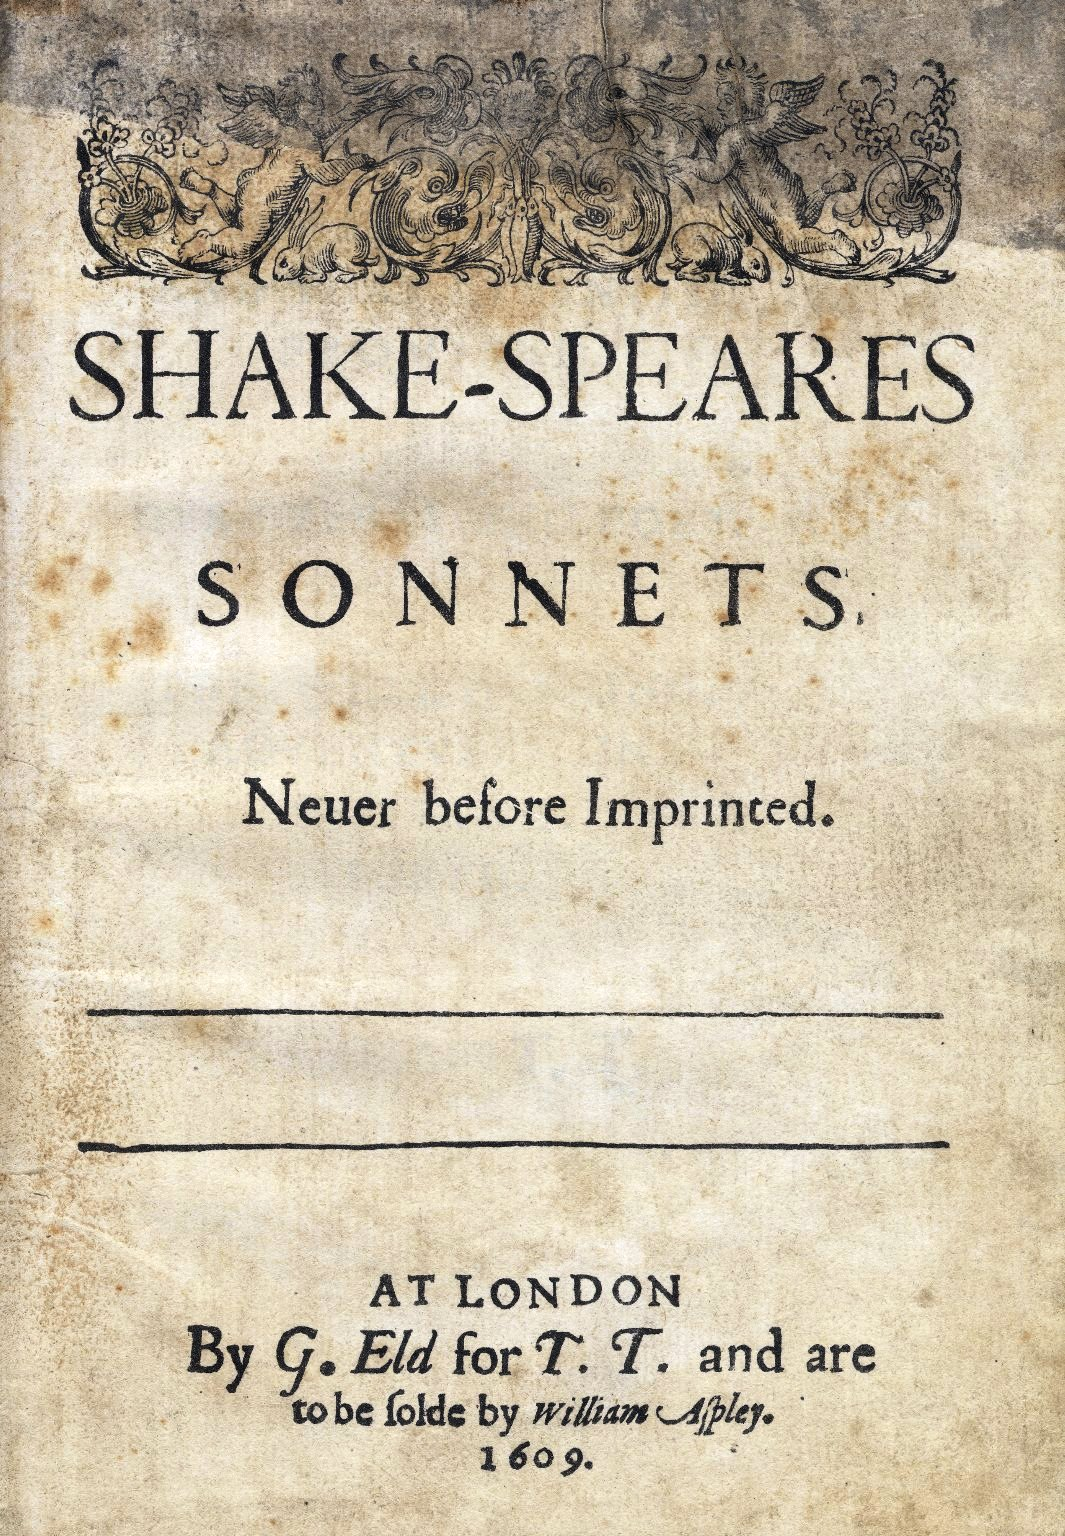 Sonnets1609 title page